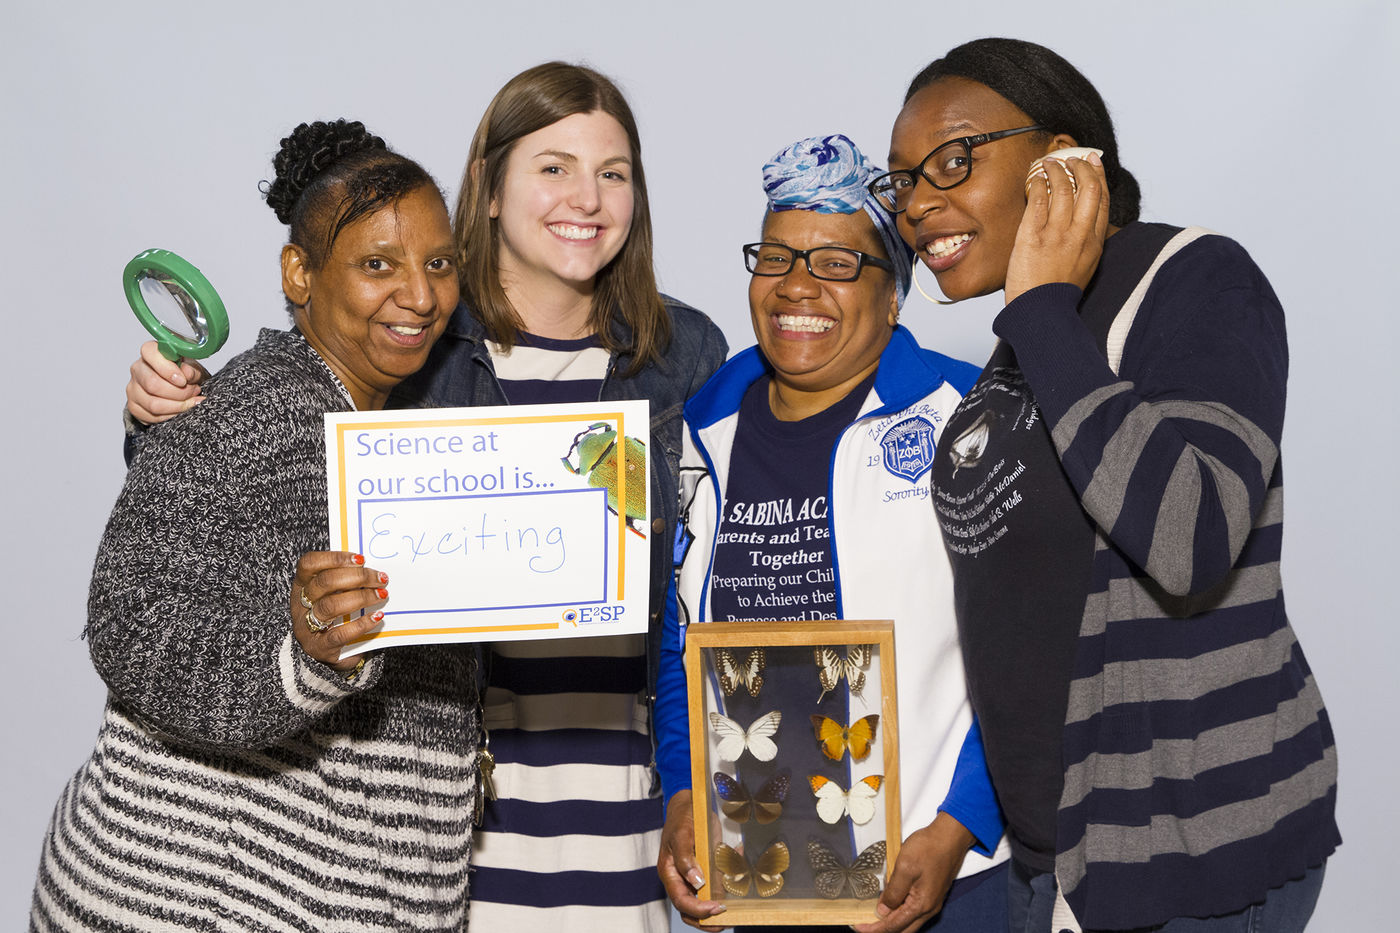 """Four Early Elementary Science Partnership (E2SP) educators pose for a photo. One holds a sign that reads """"Science at our school is exciting. Two others hold a magnifying glass and a glass case of butterflies. The other smiles while holding her hand lightly up to her face."""